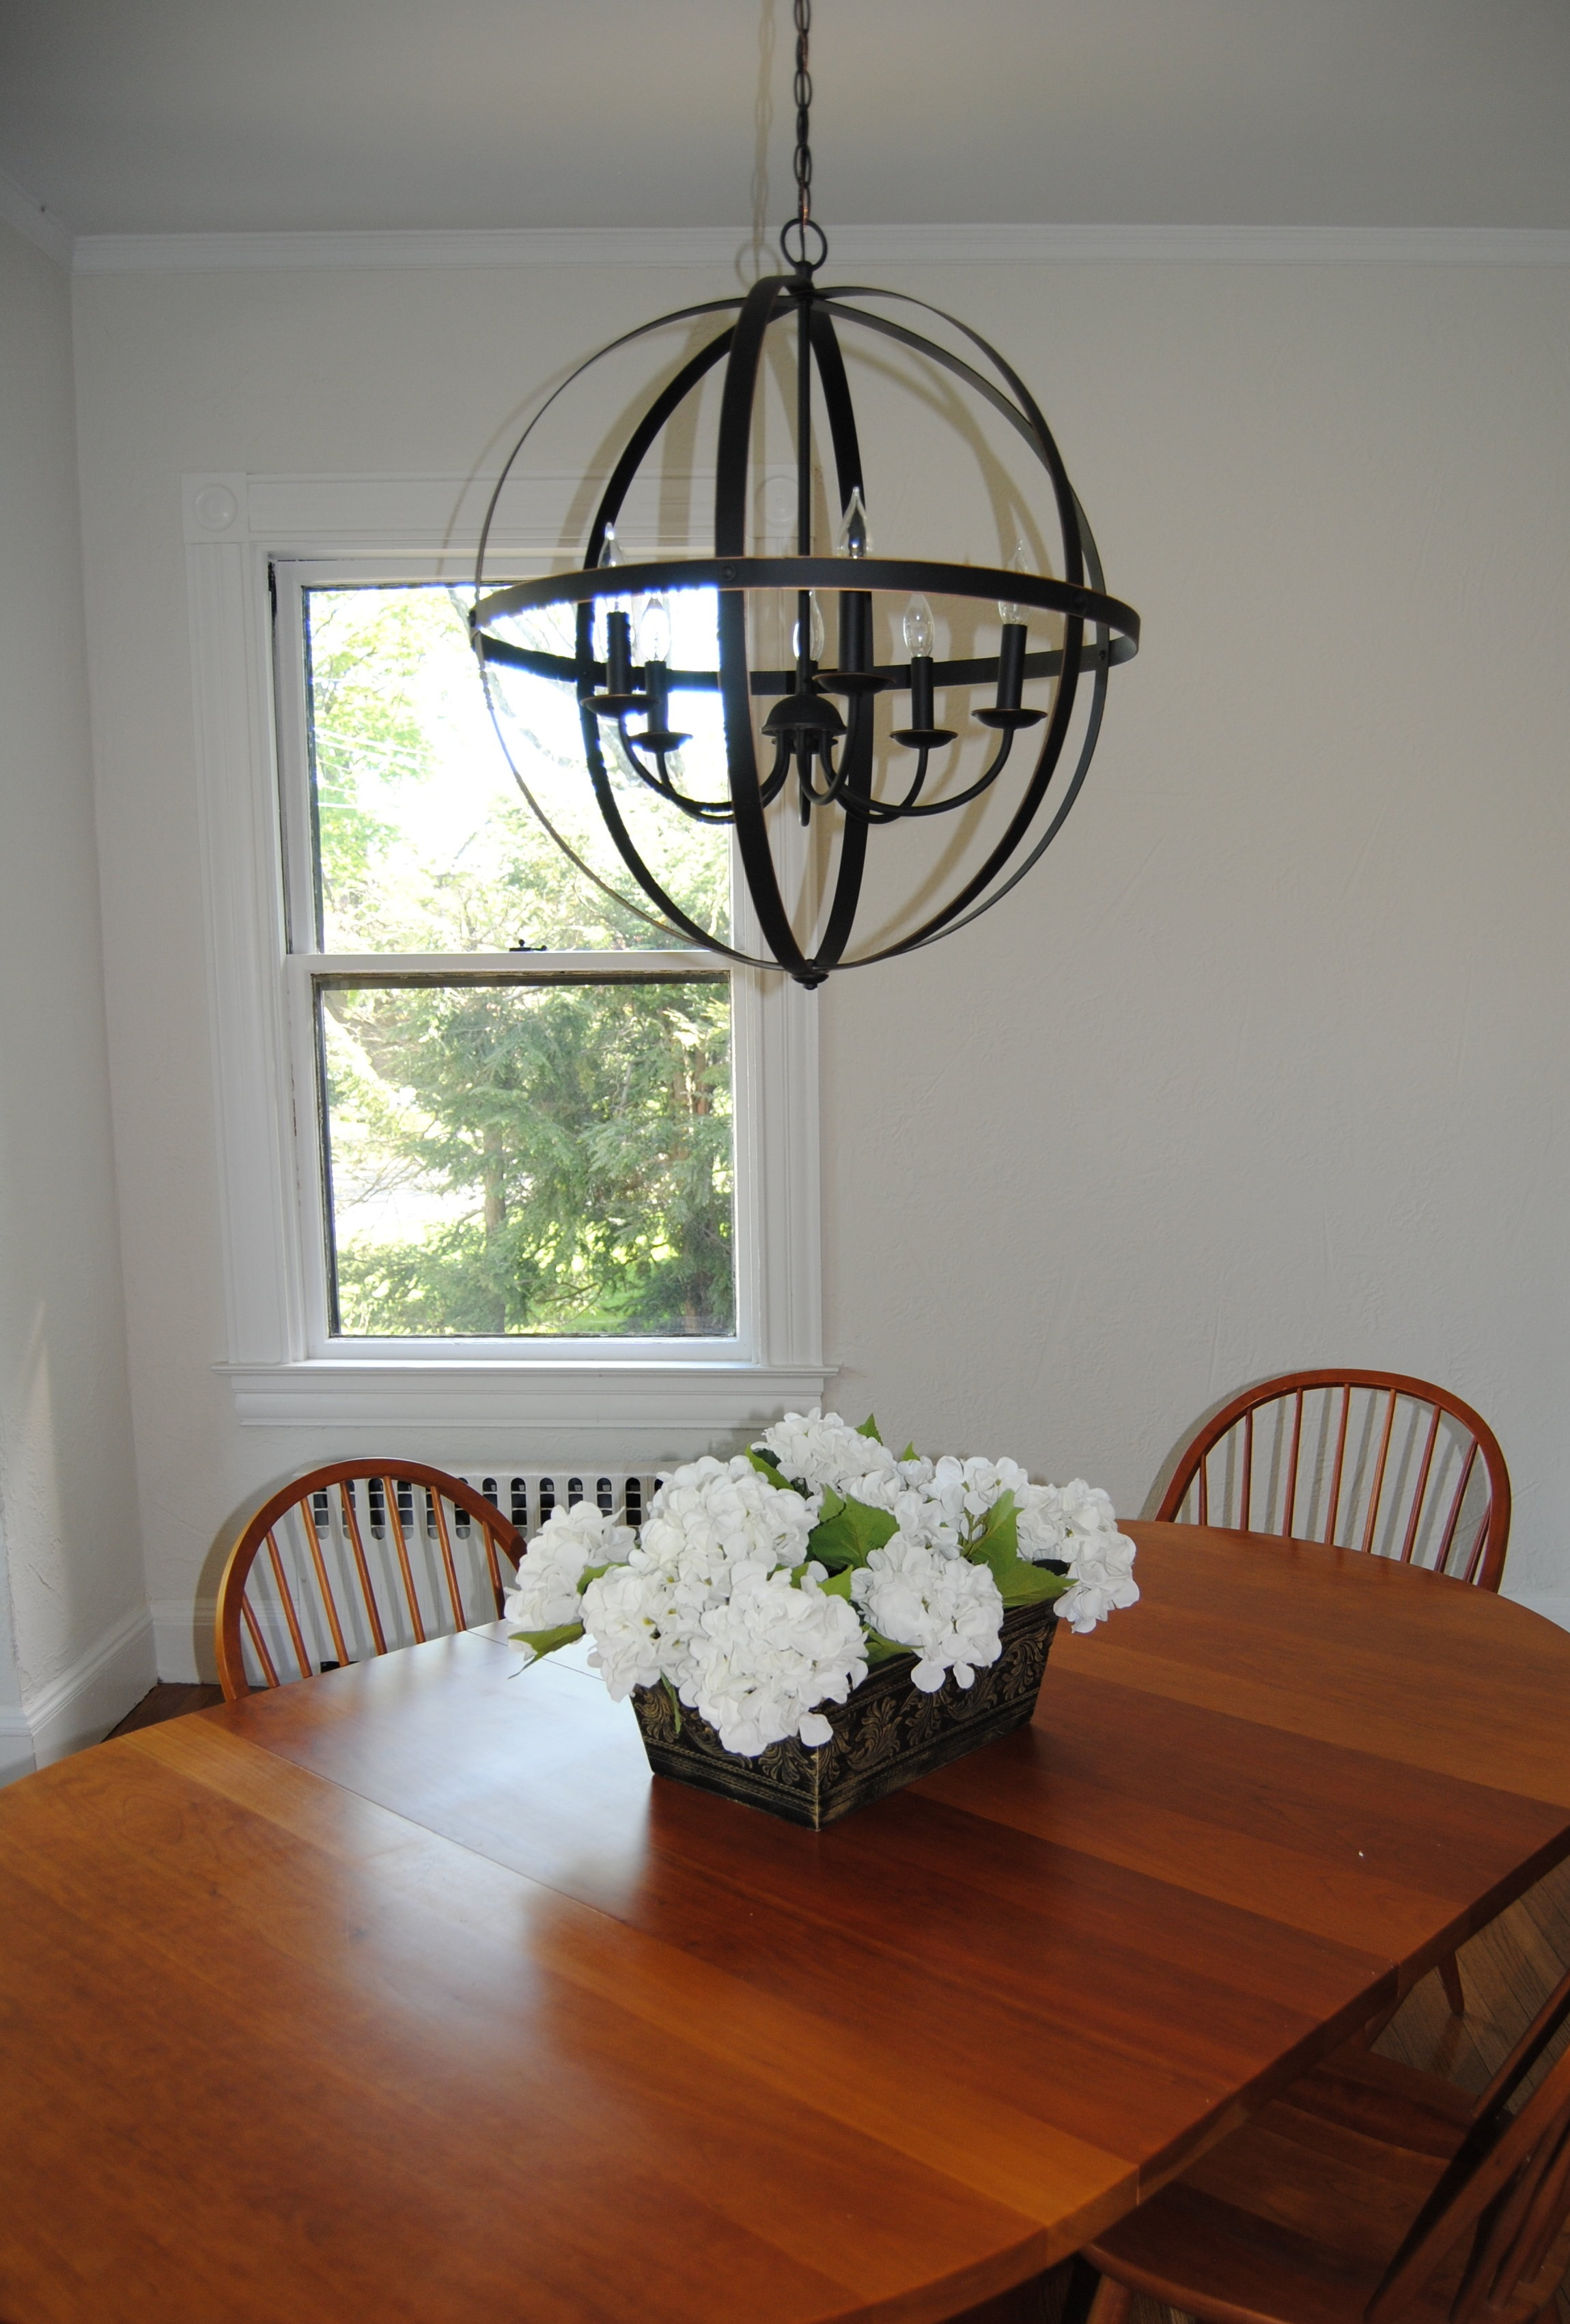 Updating the light fixture from a homely ceiling mount to this orb chandelier made a spectacular difference in the mood of this dining room in this gracious antique Victorian with 9 ft ceilings!